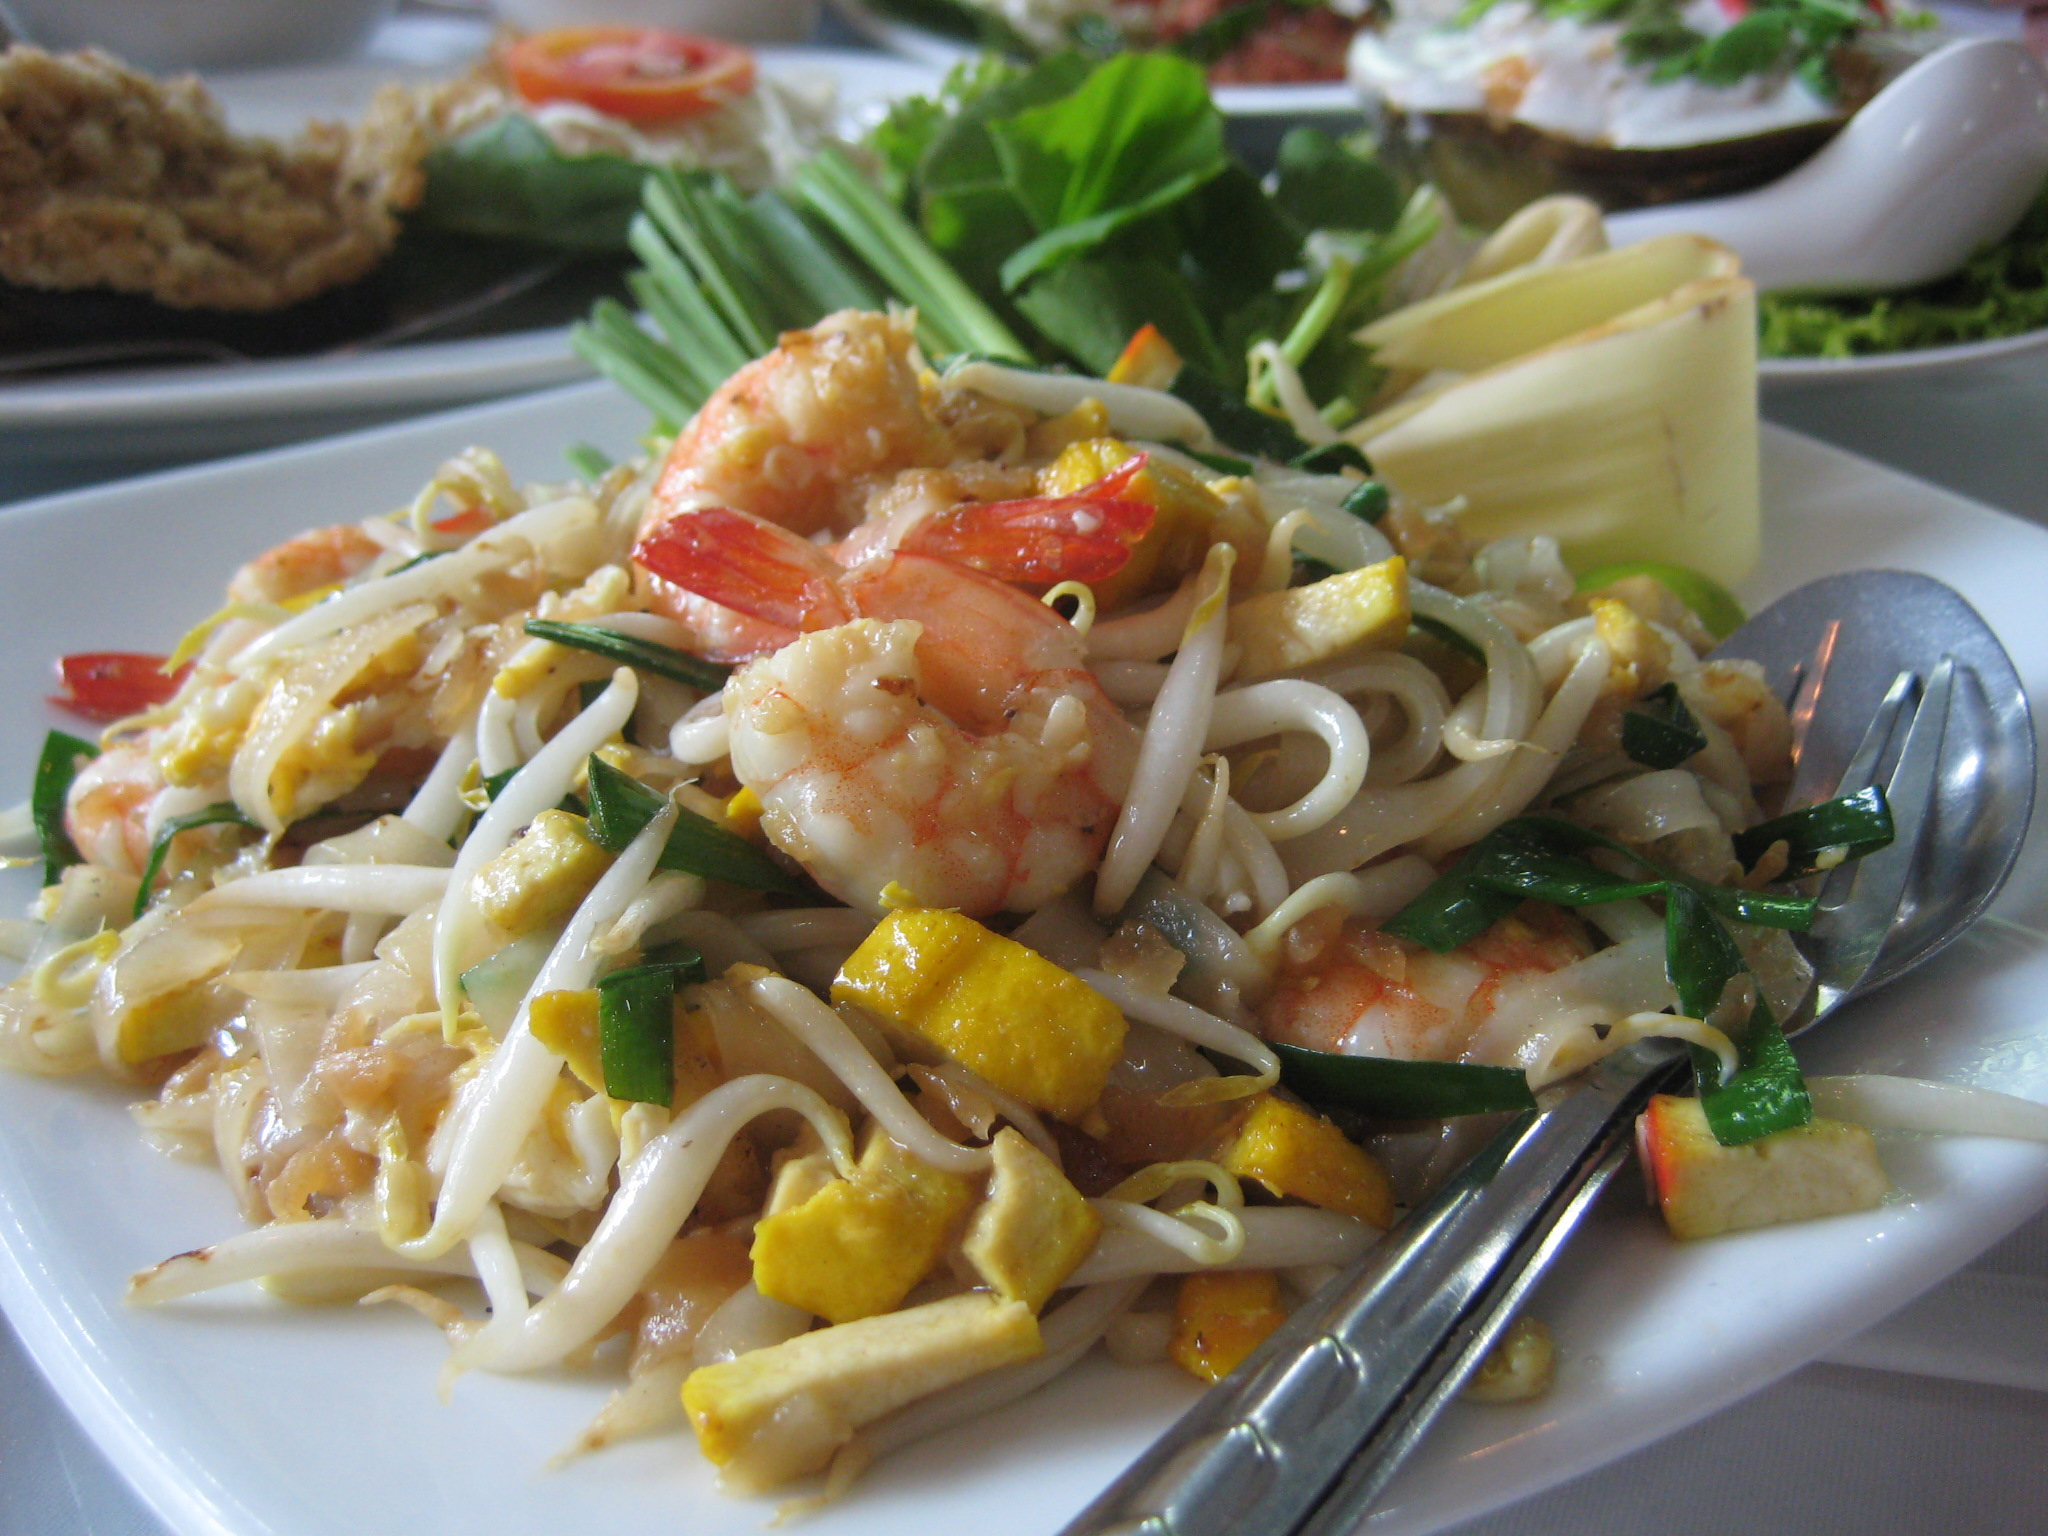 File:Pad Thai.JPG - Wikipedia, the free encyclopedia